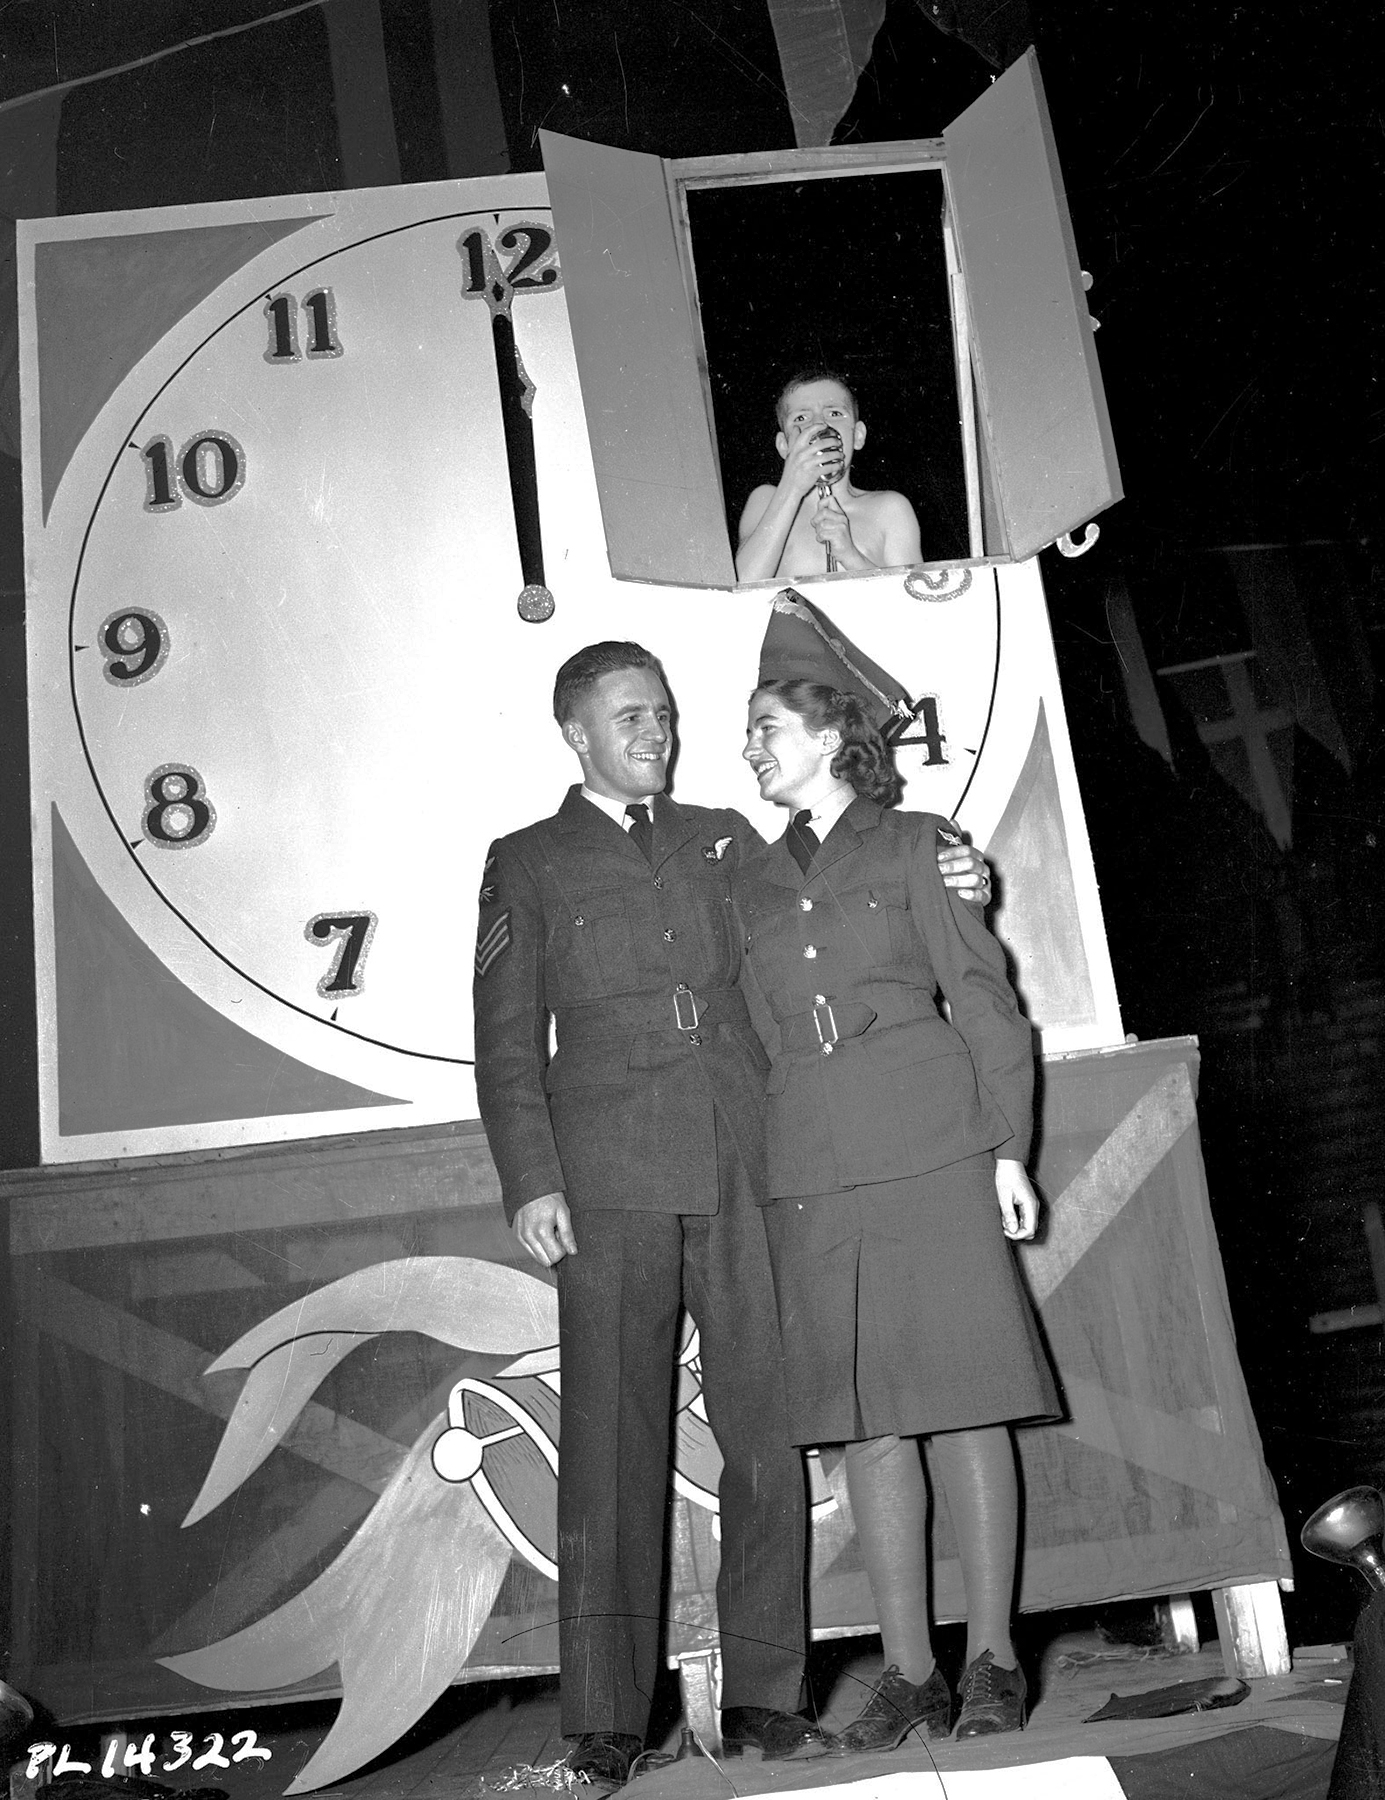 "Sergeant Lloyd Winters, a wireless air gunner from North Bay, Ontario, and Aircraftwoman Second Class Frances Beehler, from Woodstock, New Brunswick, greet the new year under the supervision of ""Young 1943"" at the New Year's dance at the Royal Canadian Air Force #1 Manning Depot in Toronto, Ontario. The event was the largest New Year's Eve function in Toronto, with attendance estimated at between 8,000 and 10,000 RCAF members and friends dancing to the music of the RCAF orchestra. PHOTO: DND Archives, PL-14322"